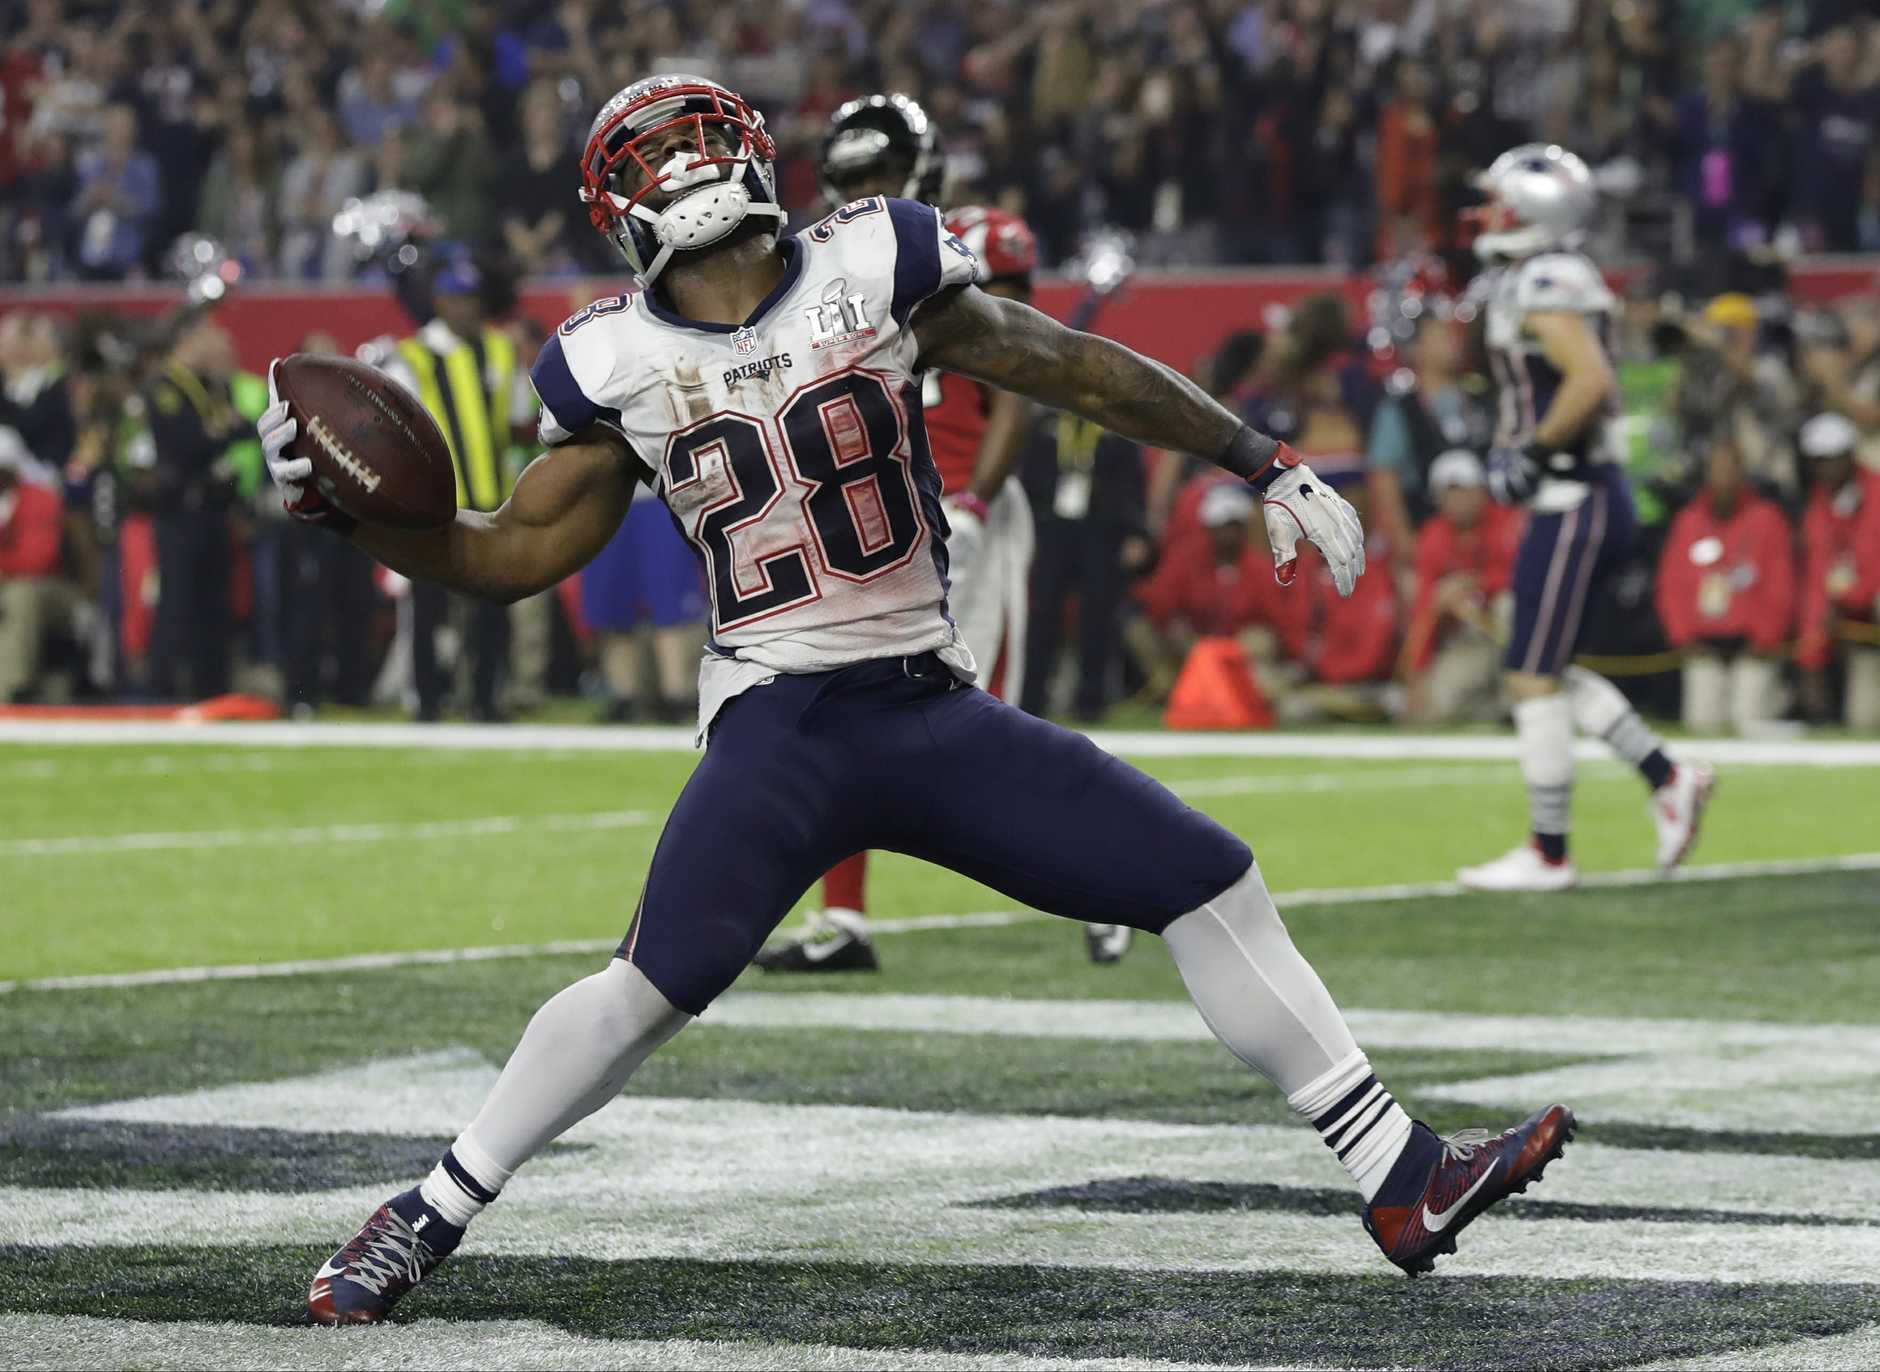 New England Patriots' James White celebrates after scoring a touchdown during the second half of the NFL Super Bowl 51 football game against the Atlanta Falcons, Sunday, Feb. 5, 2017, in Houston. (AP Photo/Chuck Burton)